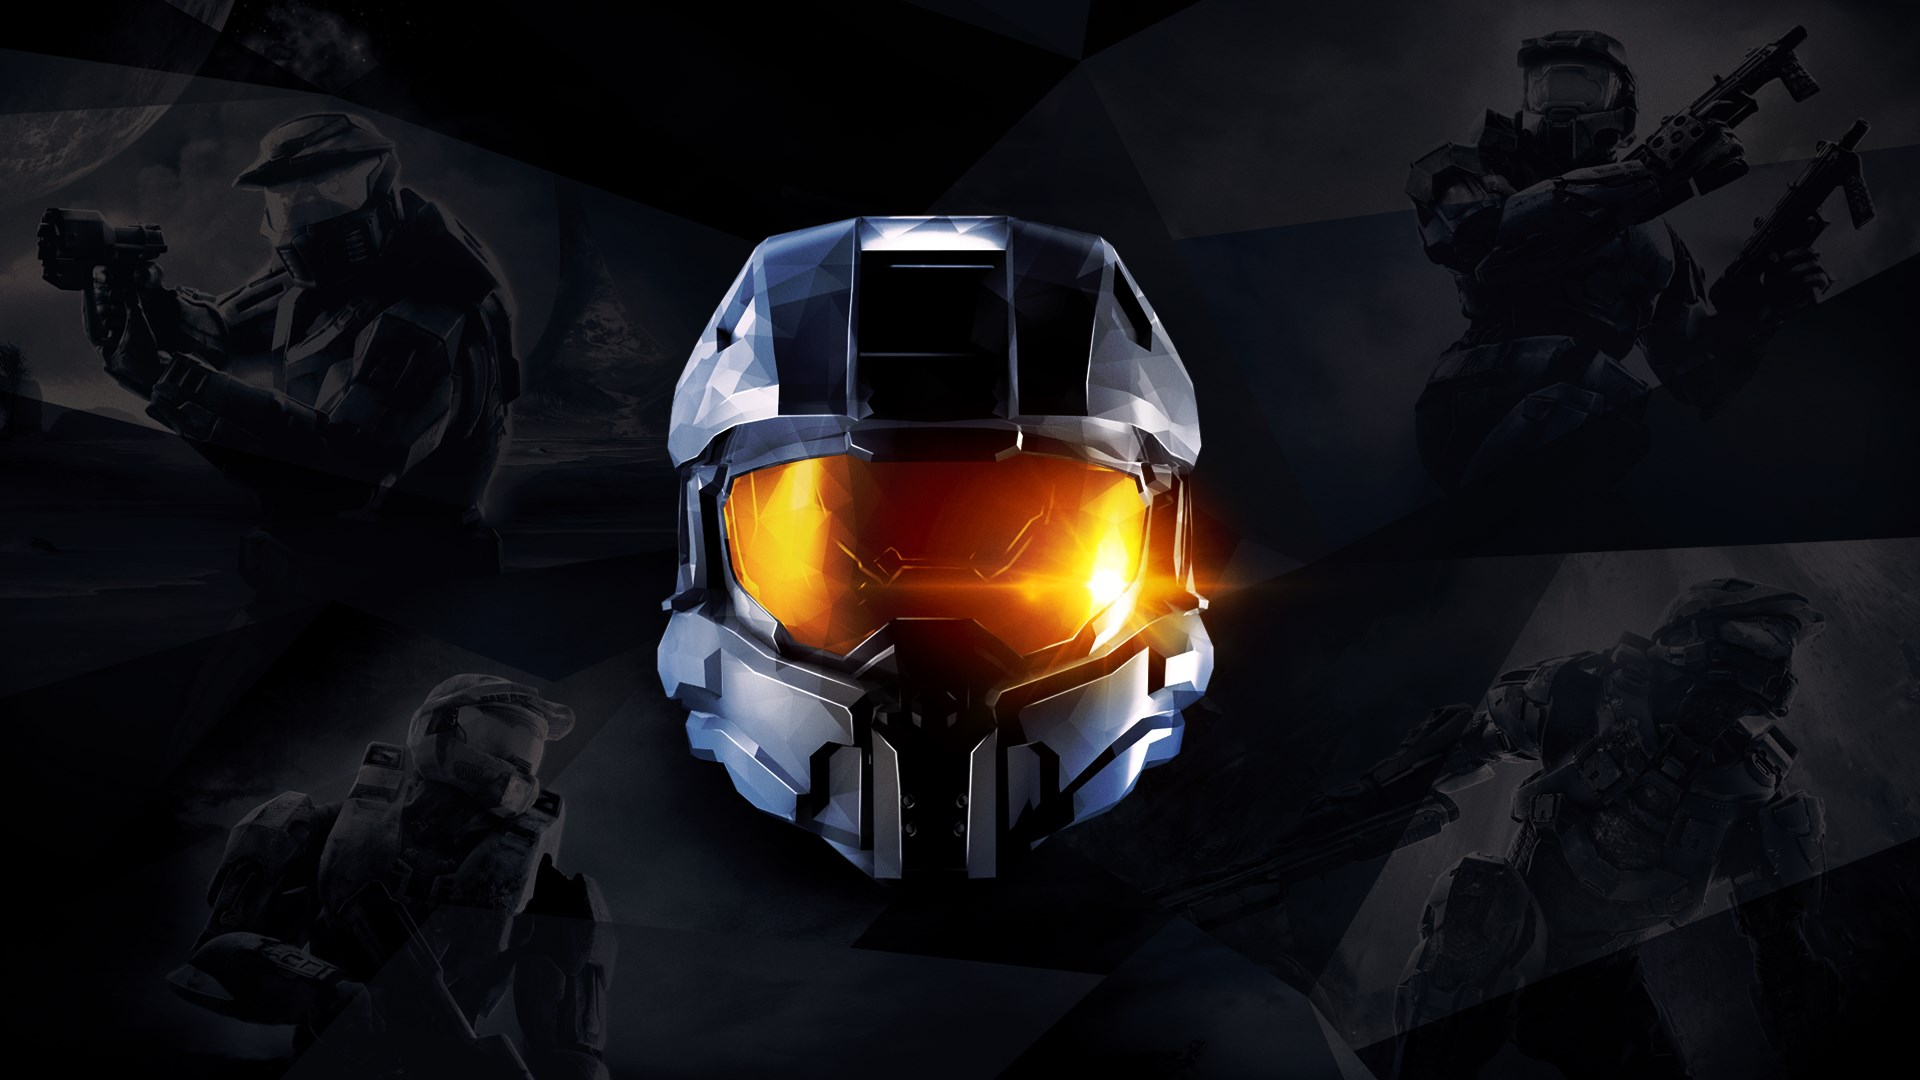 Halo: The Master Chief Collection may have some PC good news